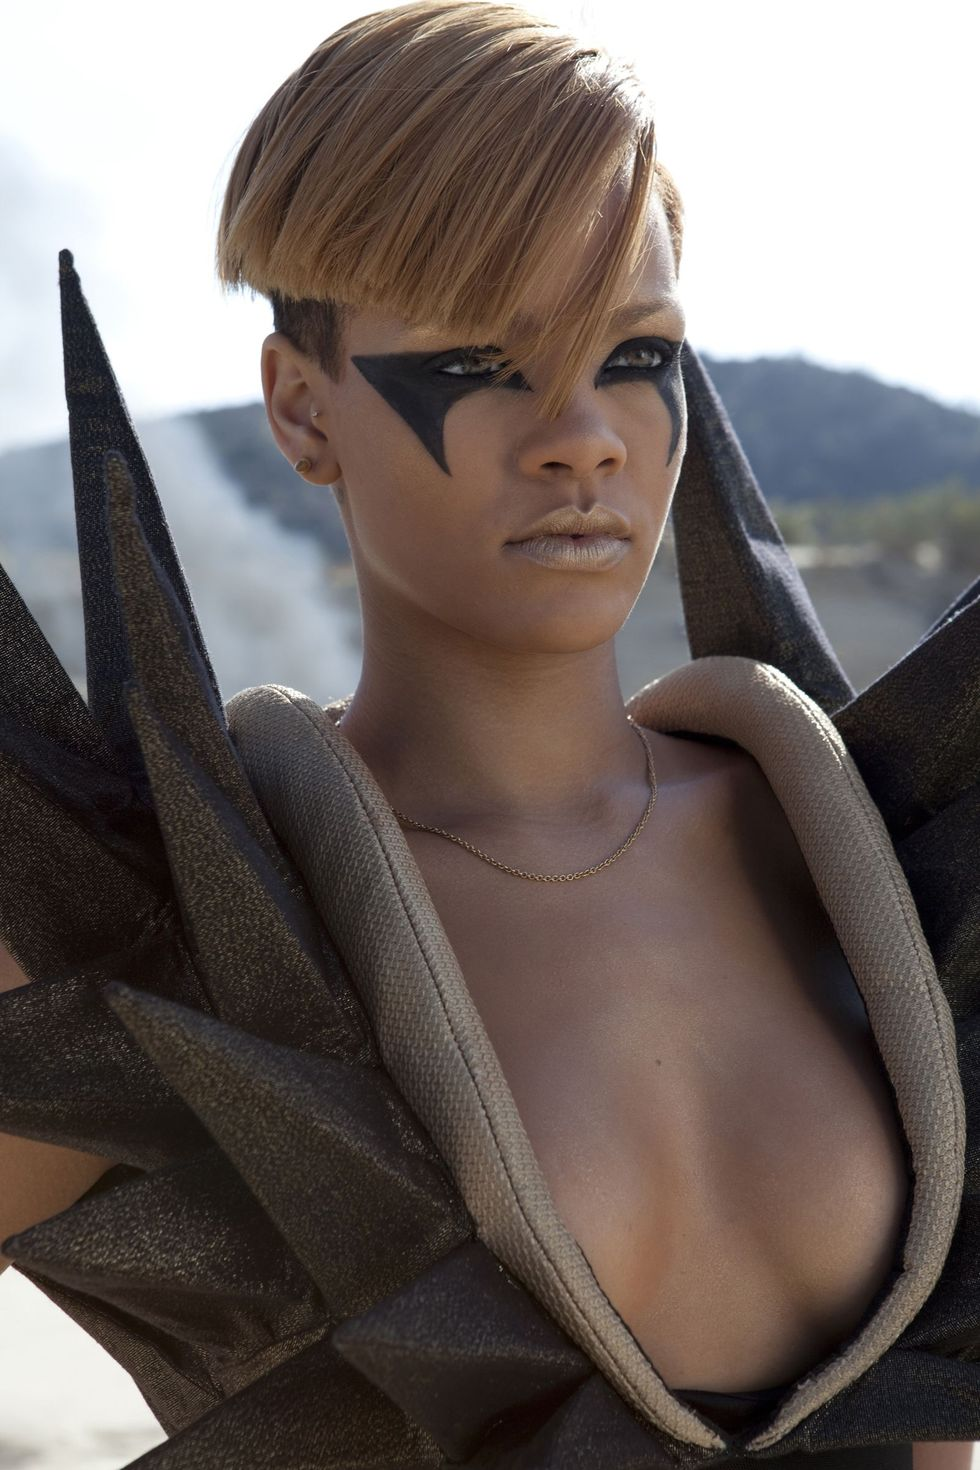 rihanna-hard-music-video-promos-01